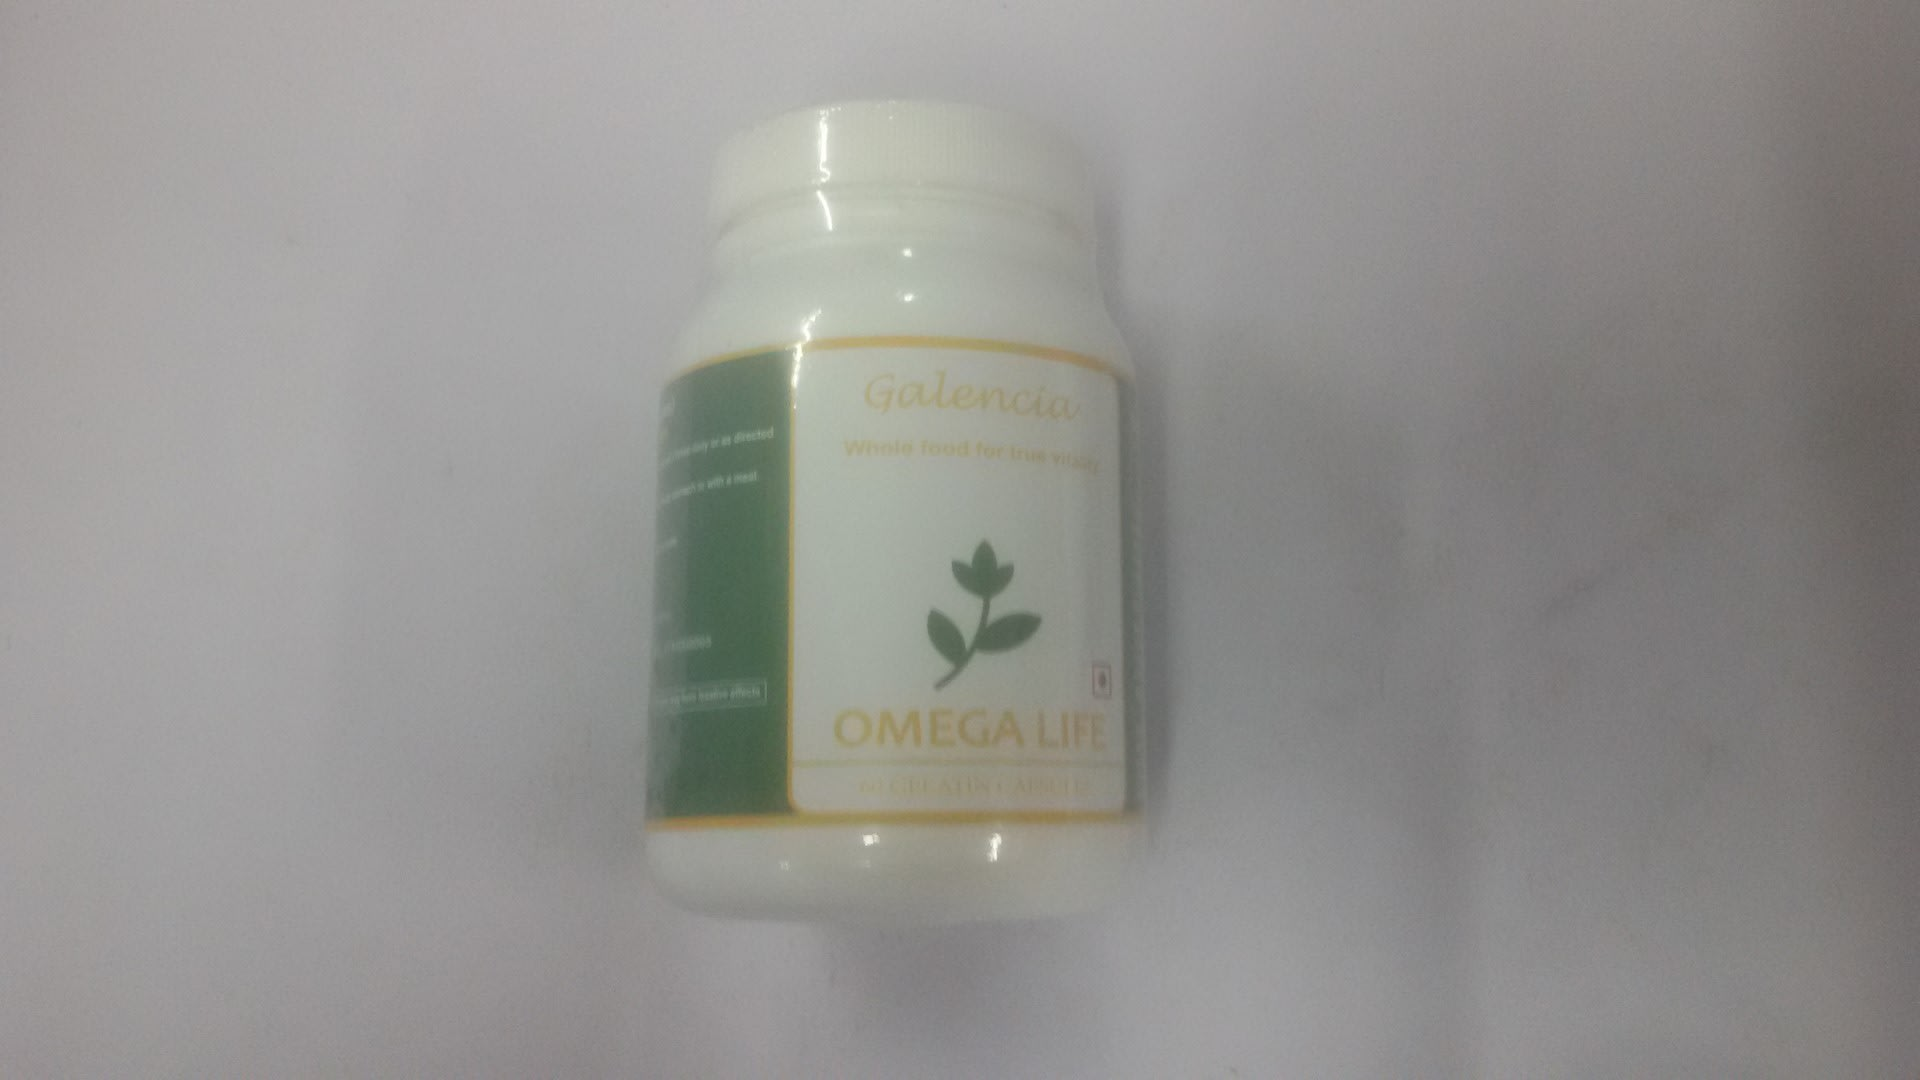 Omegalife Capsule